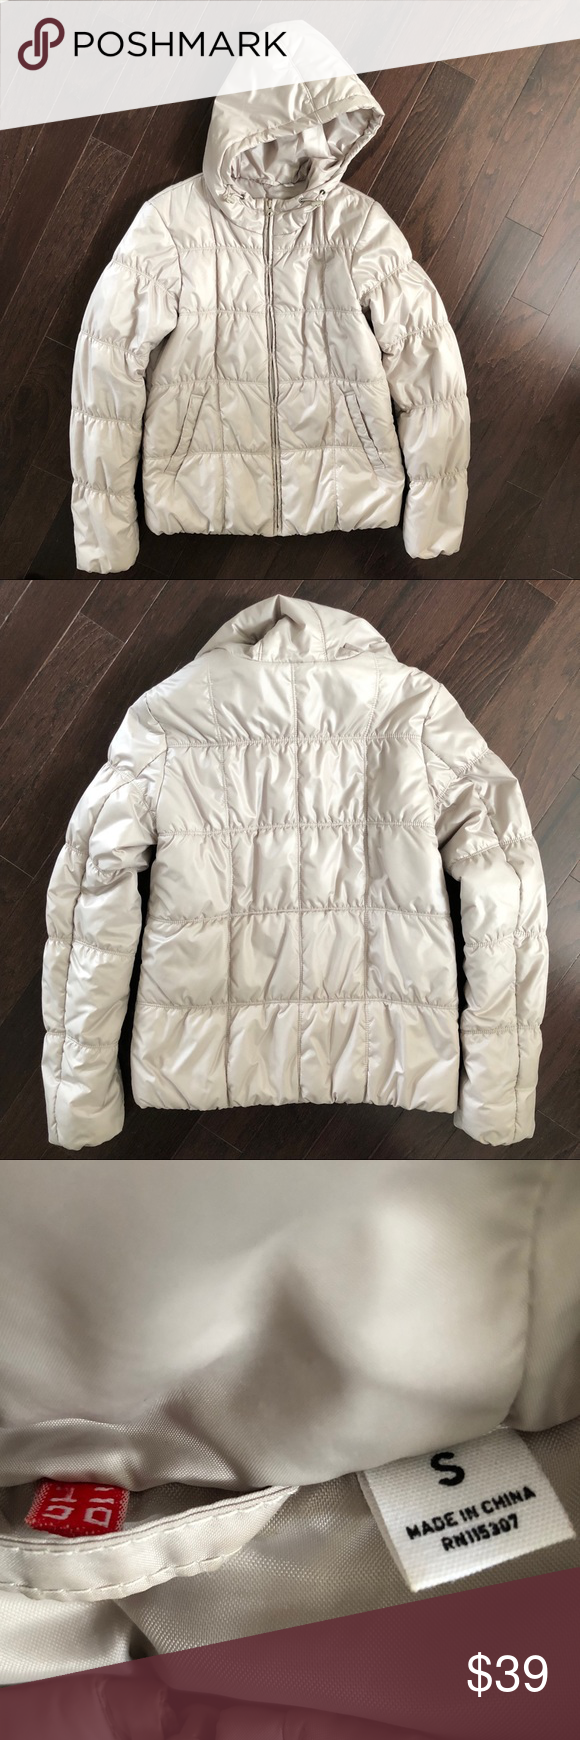 2d841a858 Uniqlo Puffer Jacket Excellent used condition! Super warm and cozy.  Beautiful champagne color that is hard to capture in photos. Uniqlo Jackets  & Coats